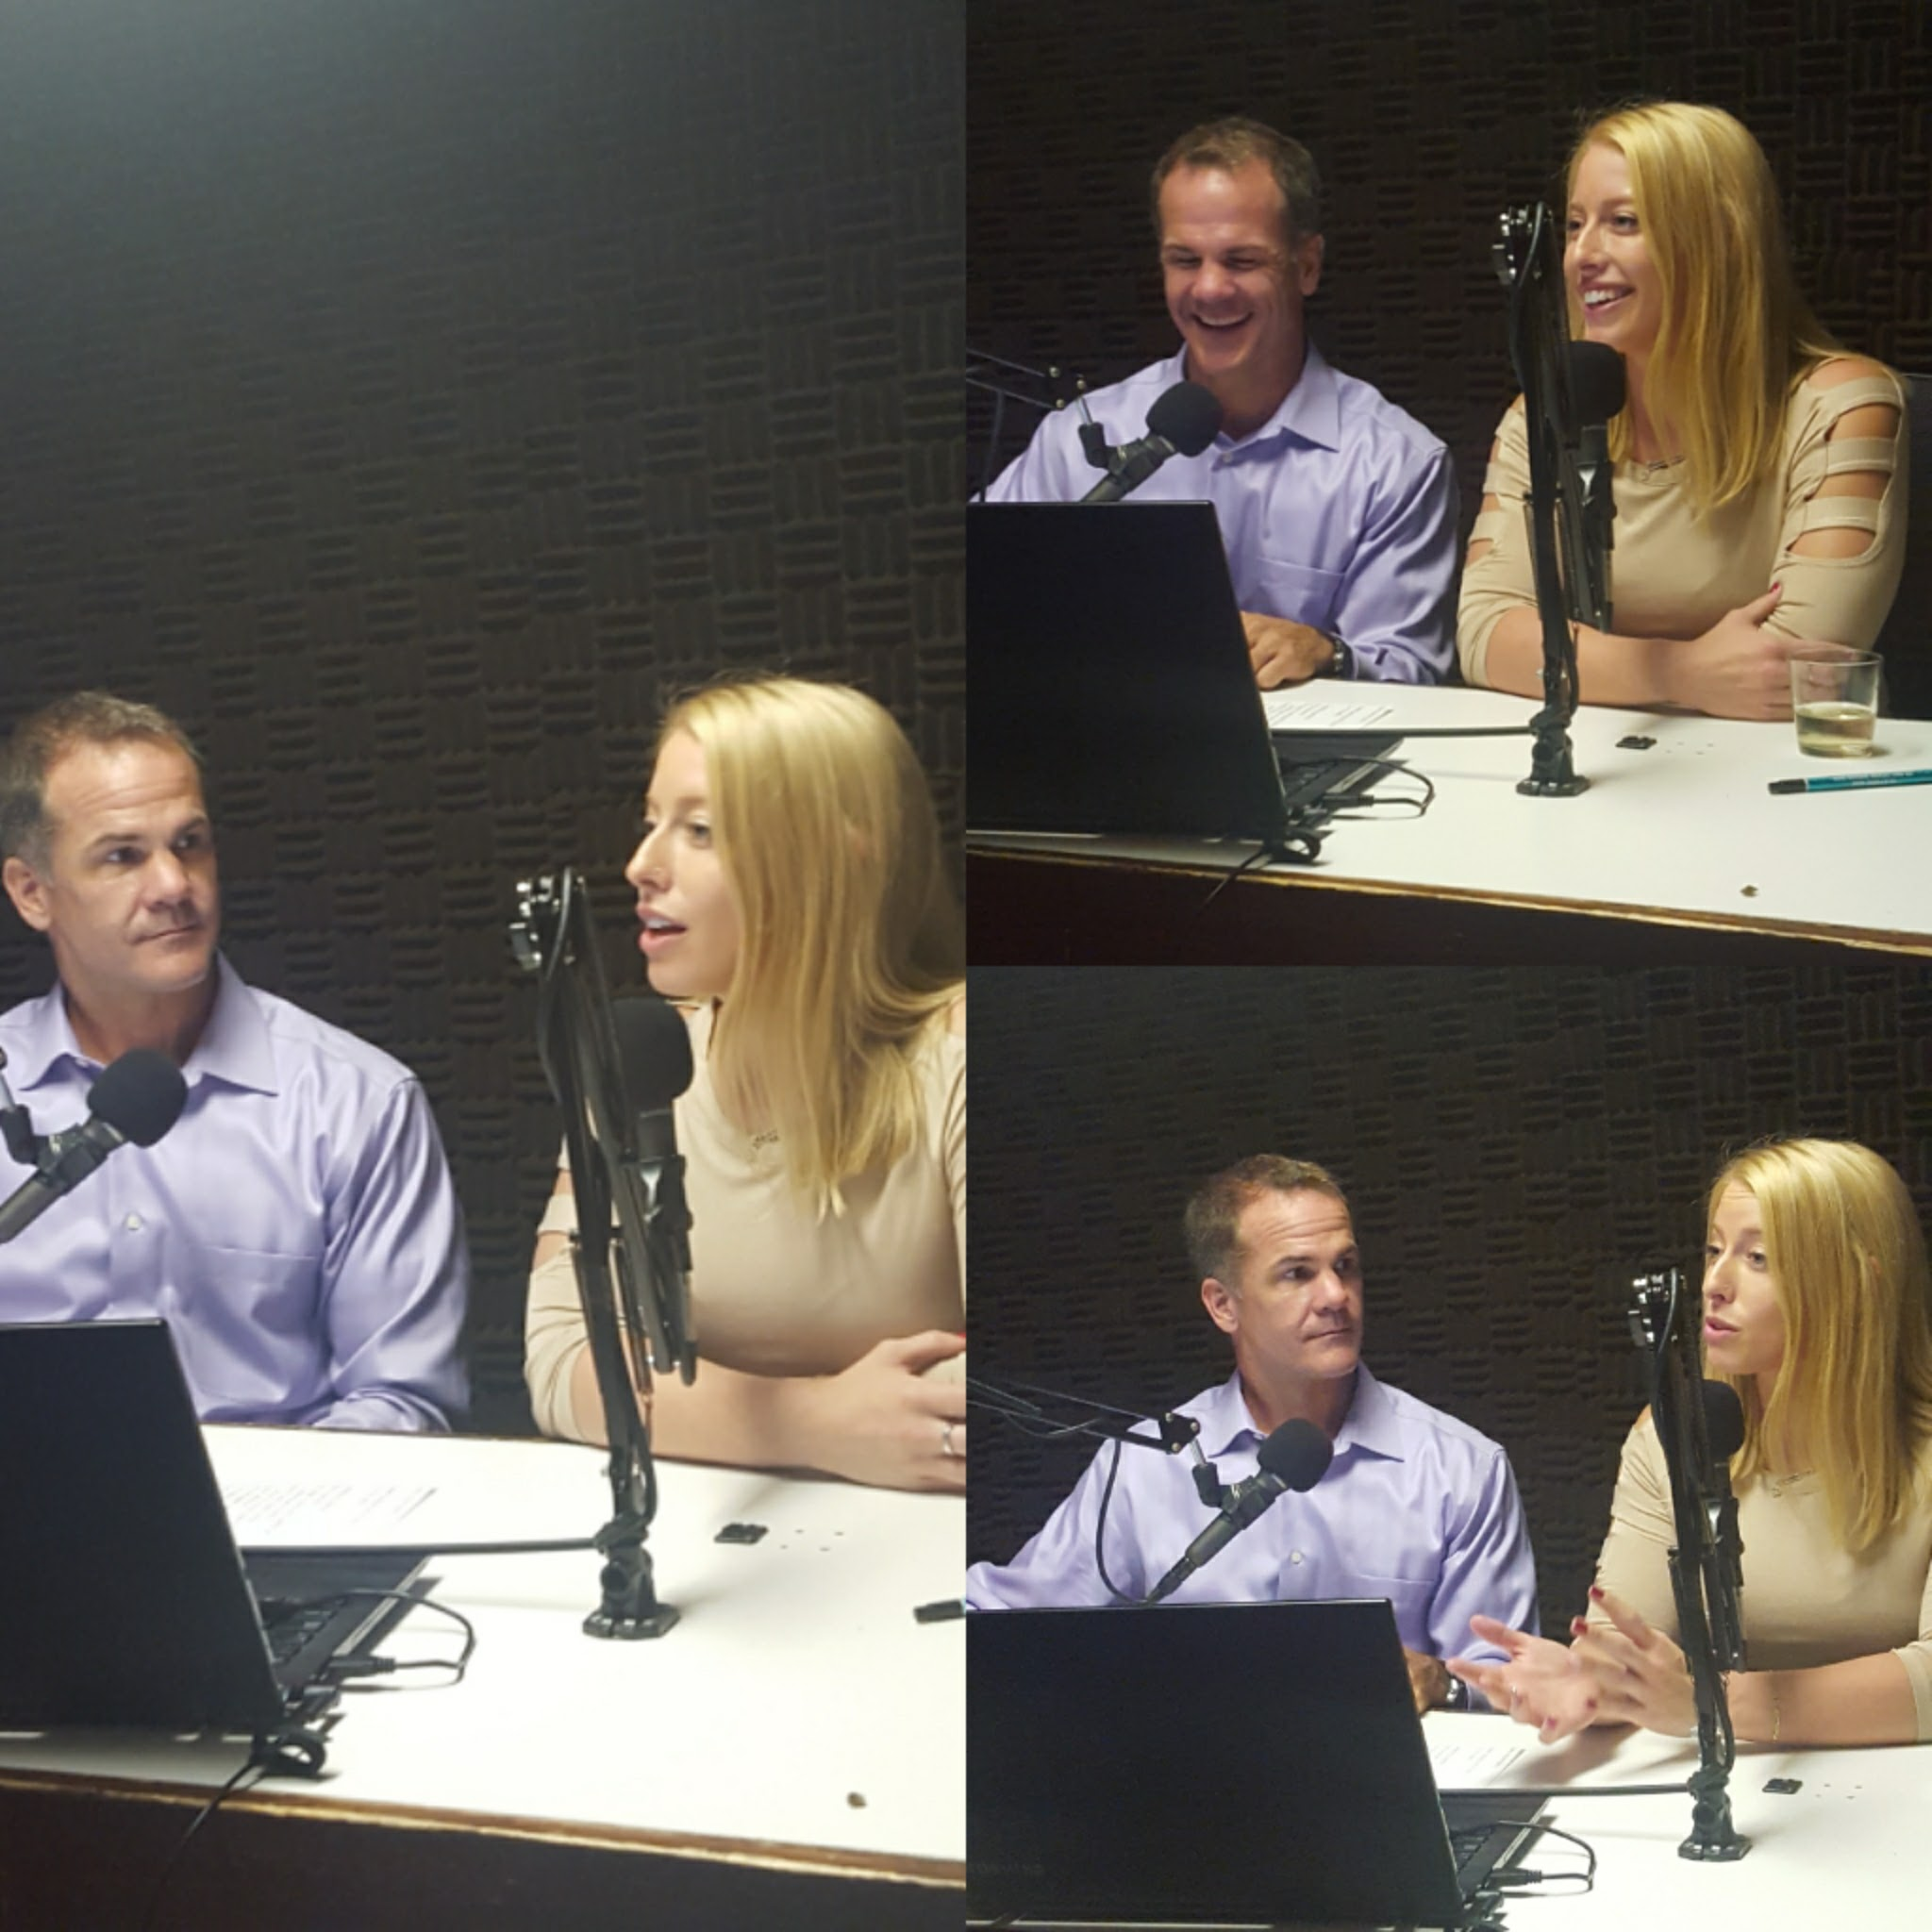 Dr. David Wise featured Kael on his radio show in March 2017 discussing the topic of health and fitness in the modern age.